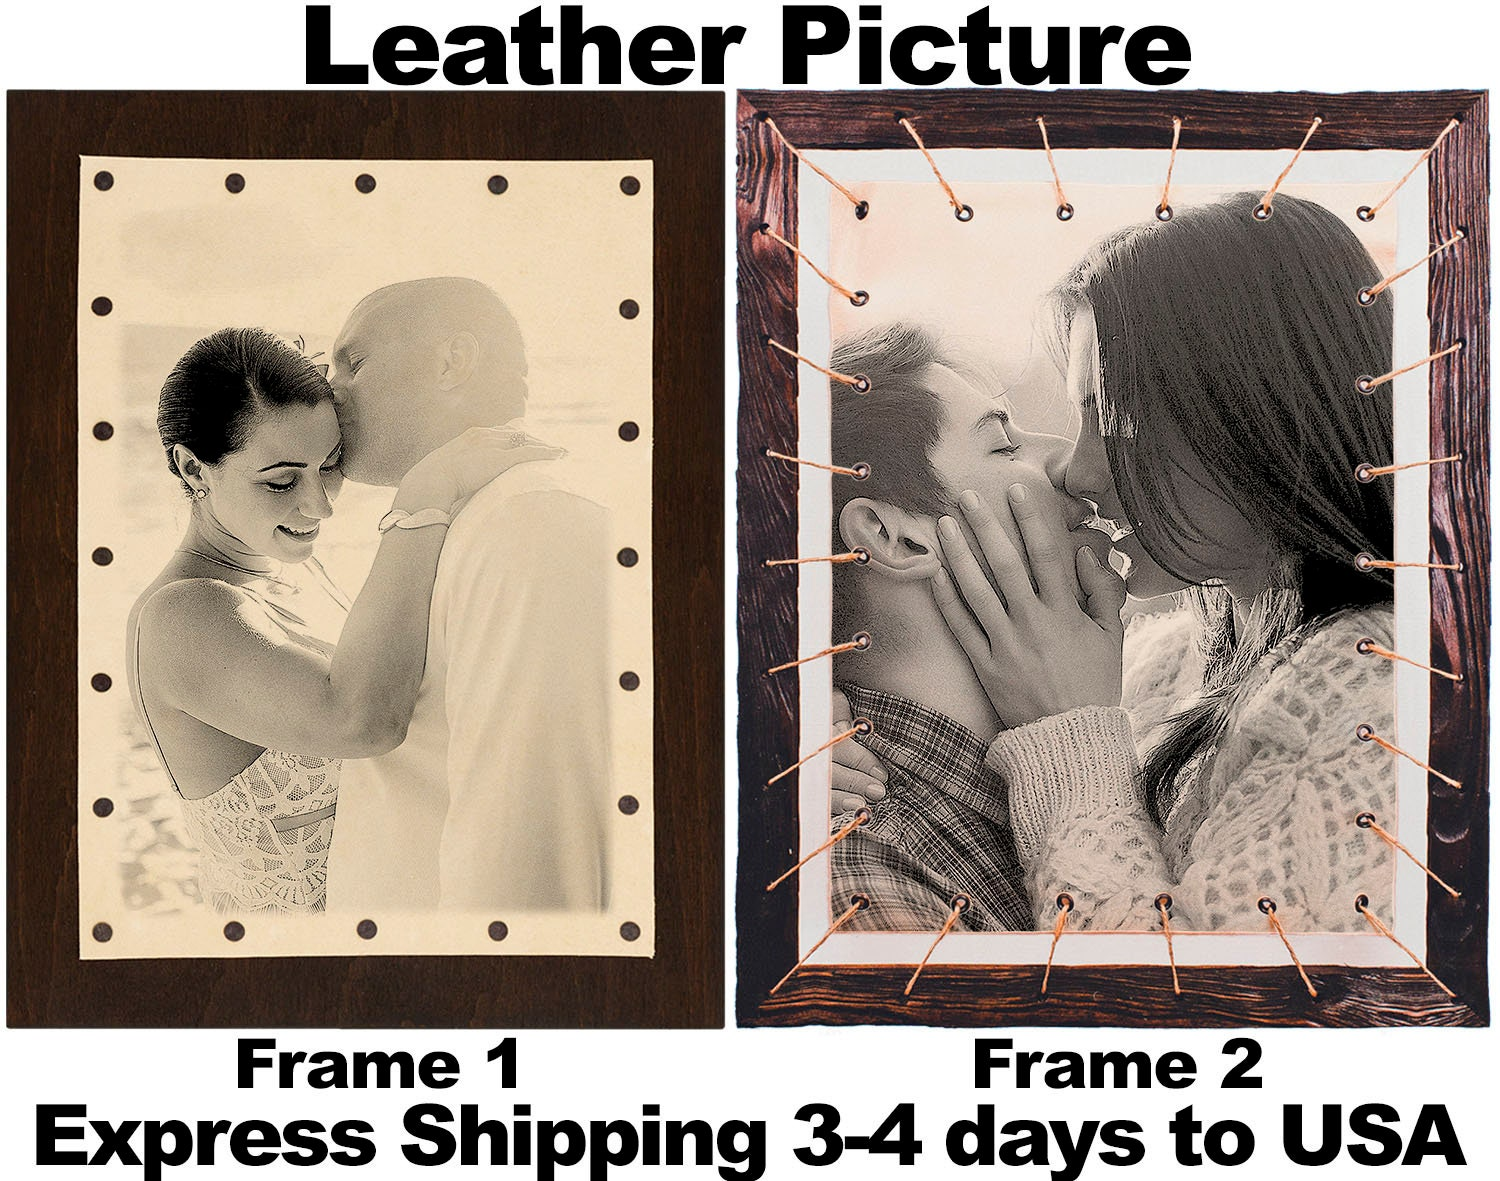 3rd Wedding Anniversary Gifts For Husband: 3rd Anniversary Gift Leather Anniversary For Her Husband